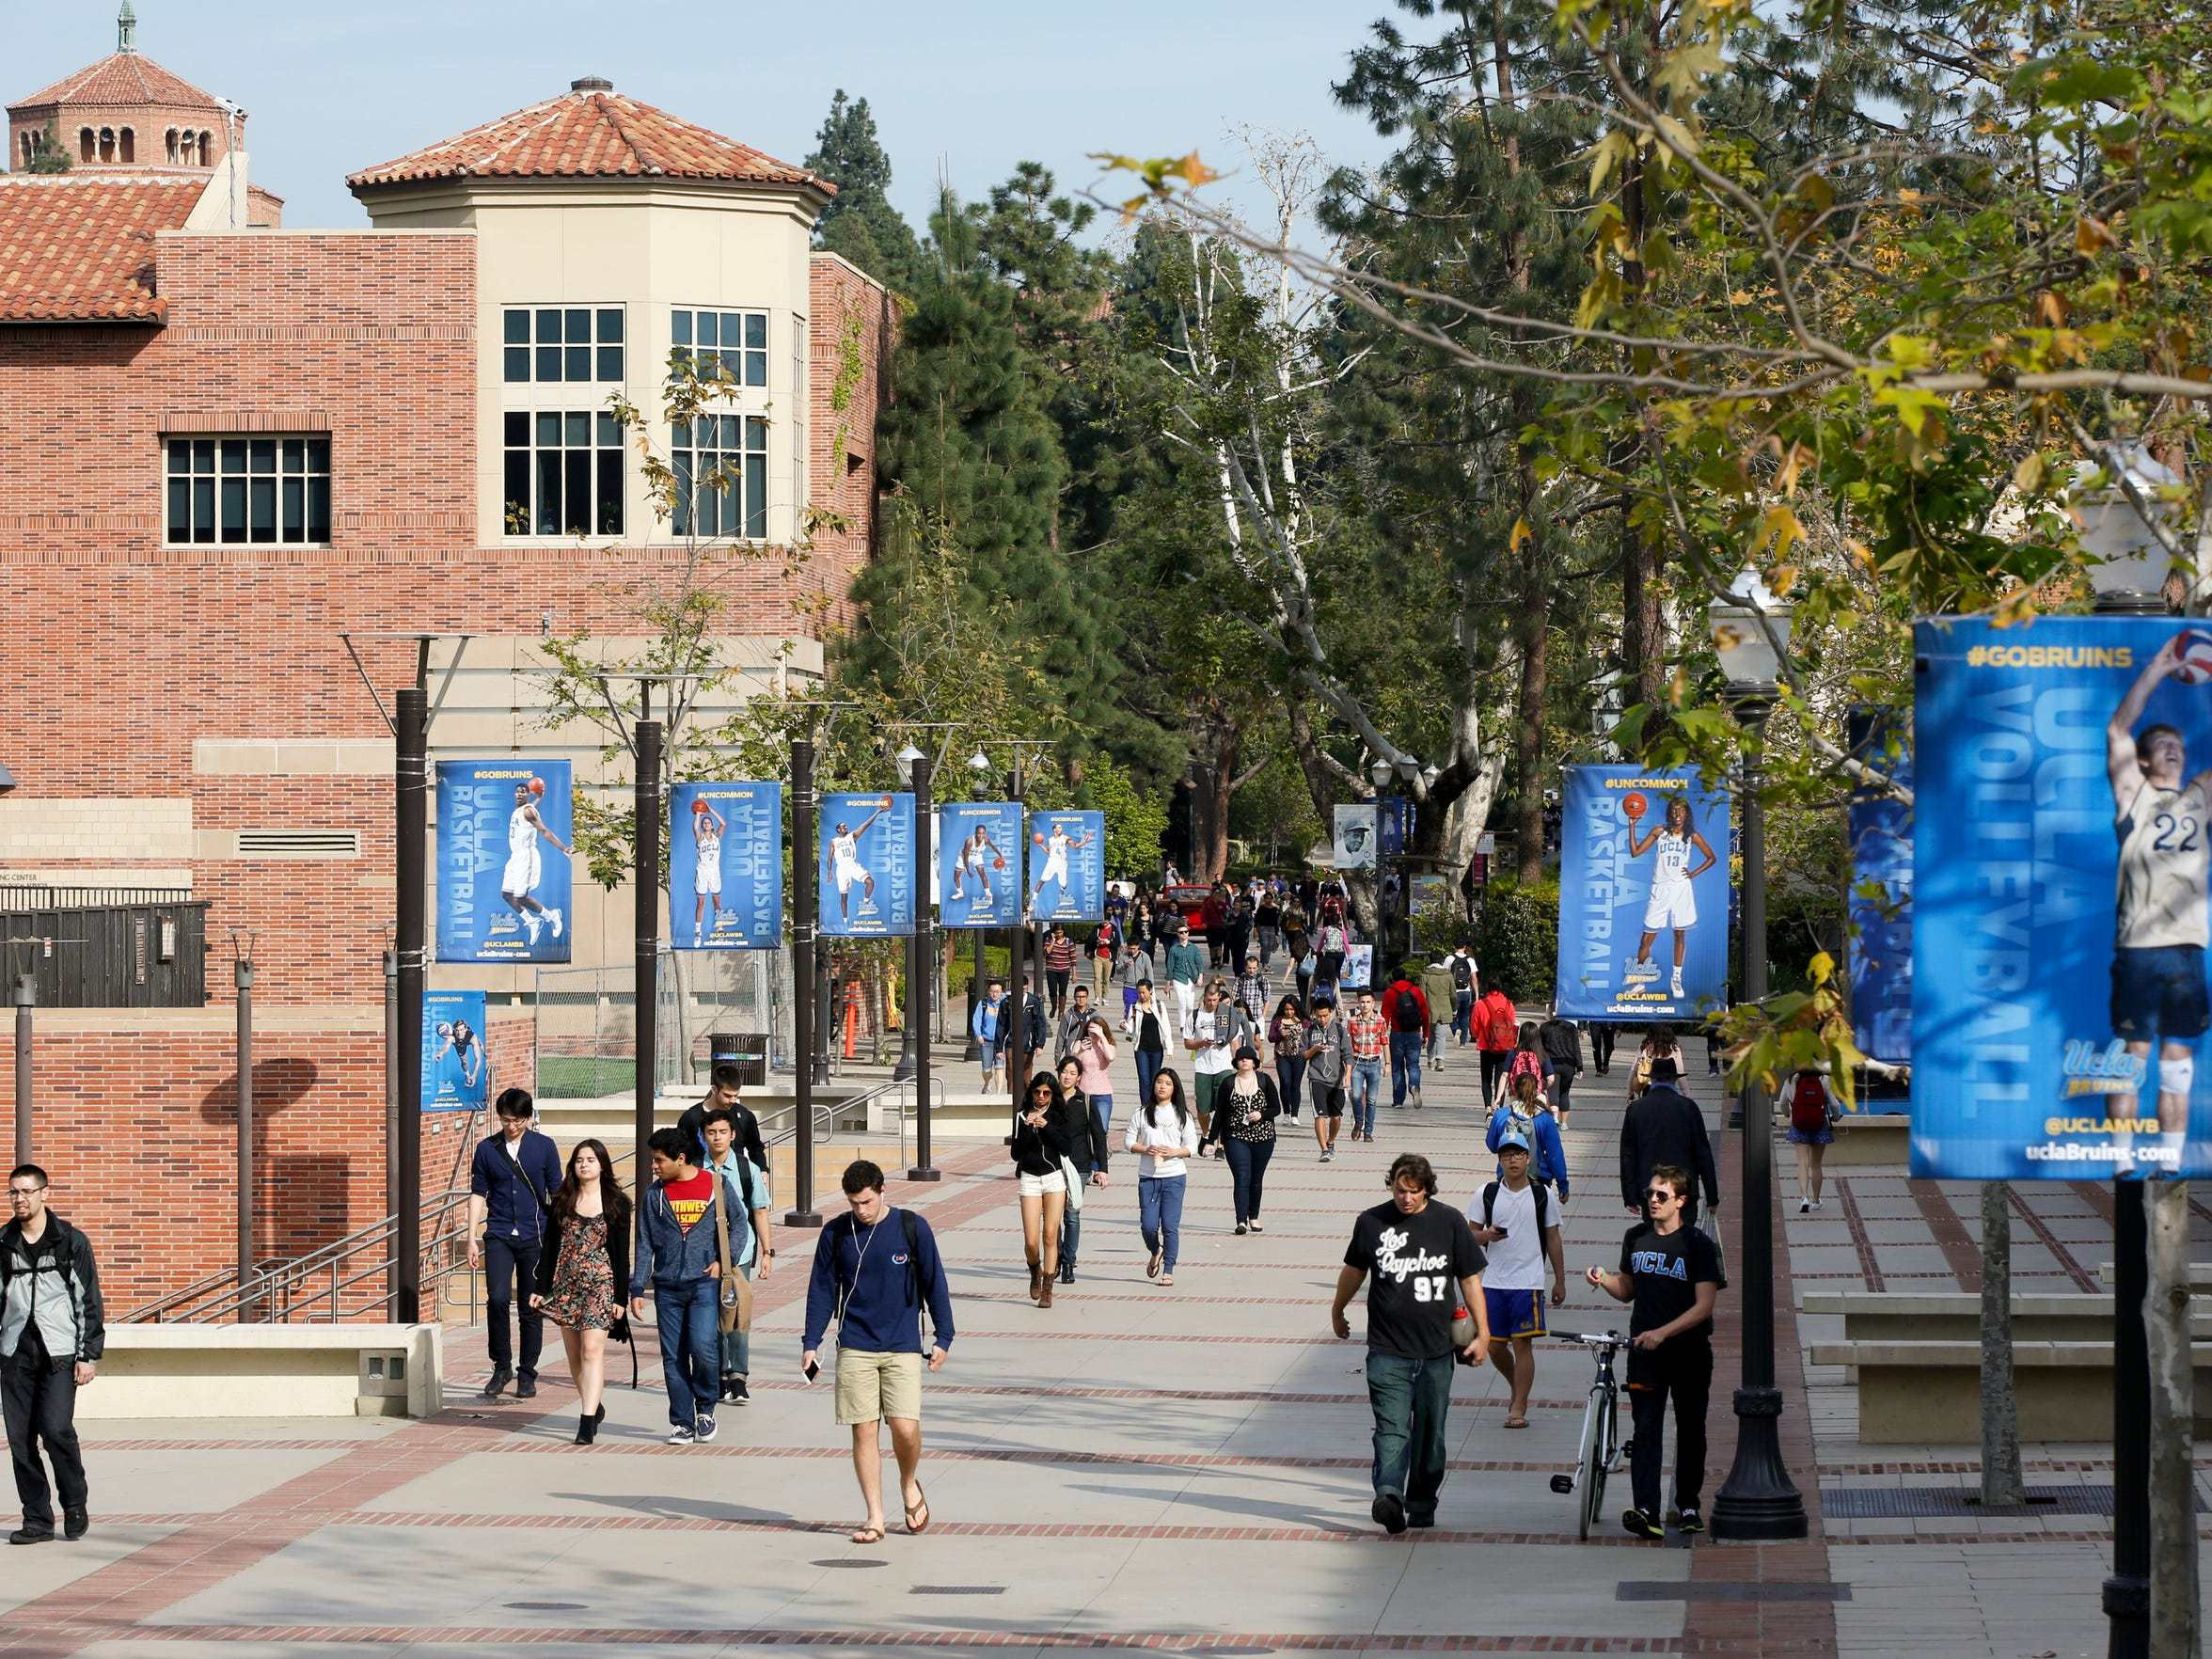 Students walk around the UCLA campus in Los Angeles, California on Feb. 26, 2015.